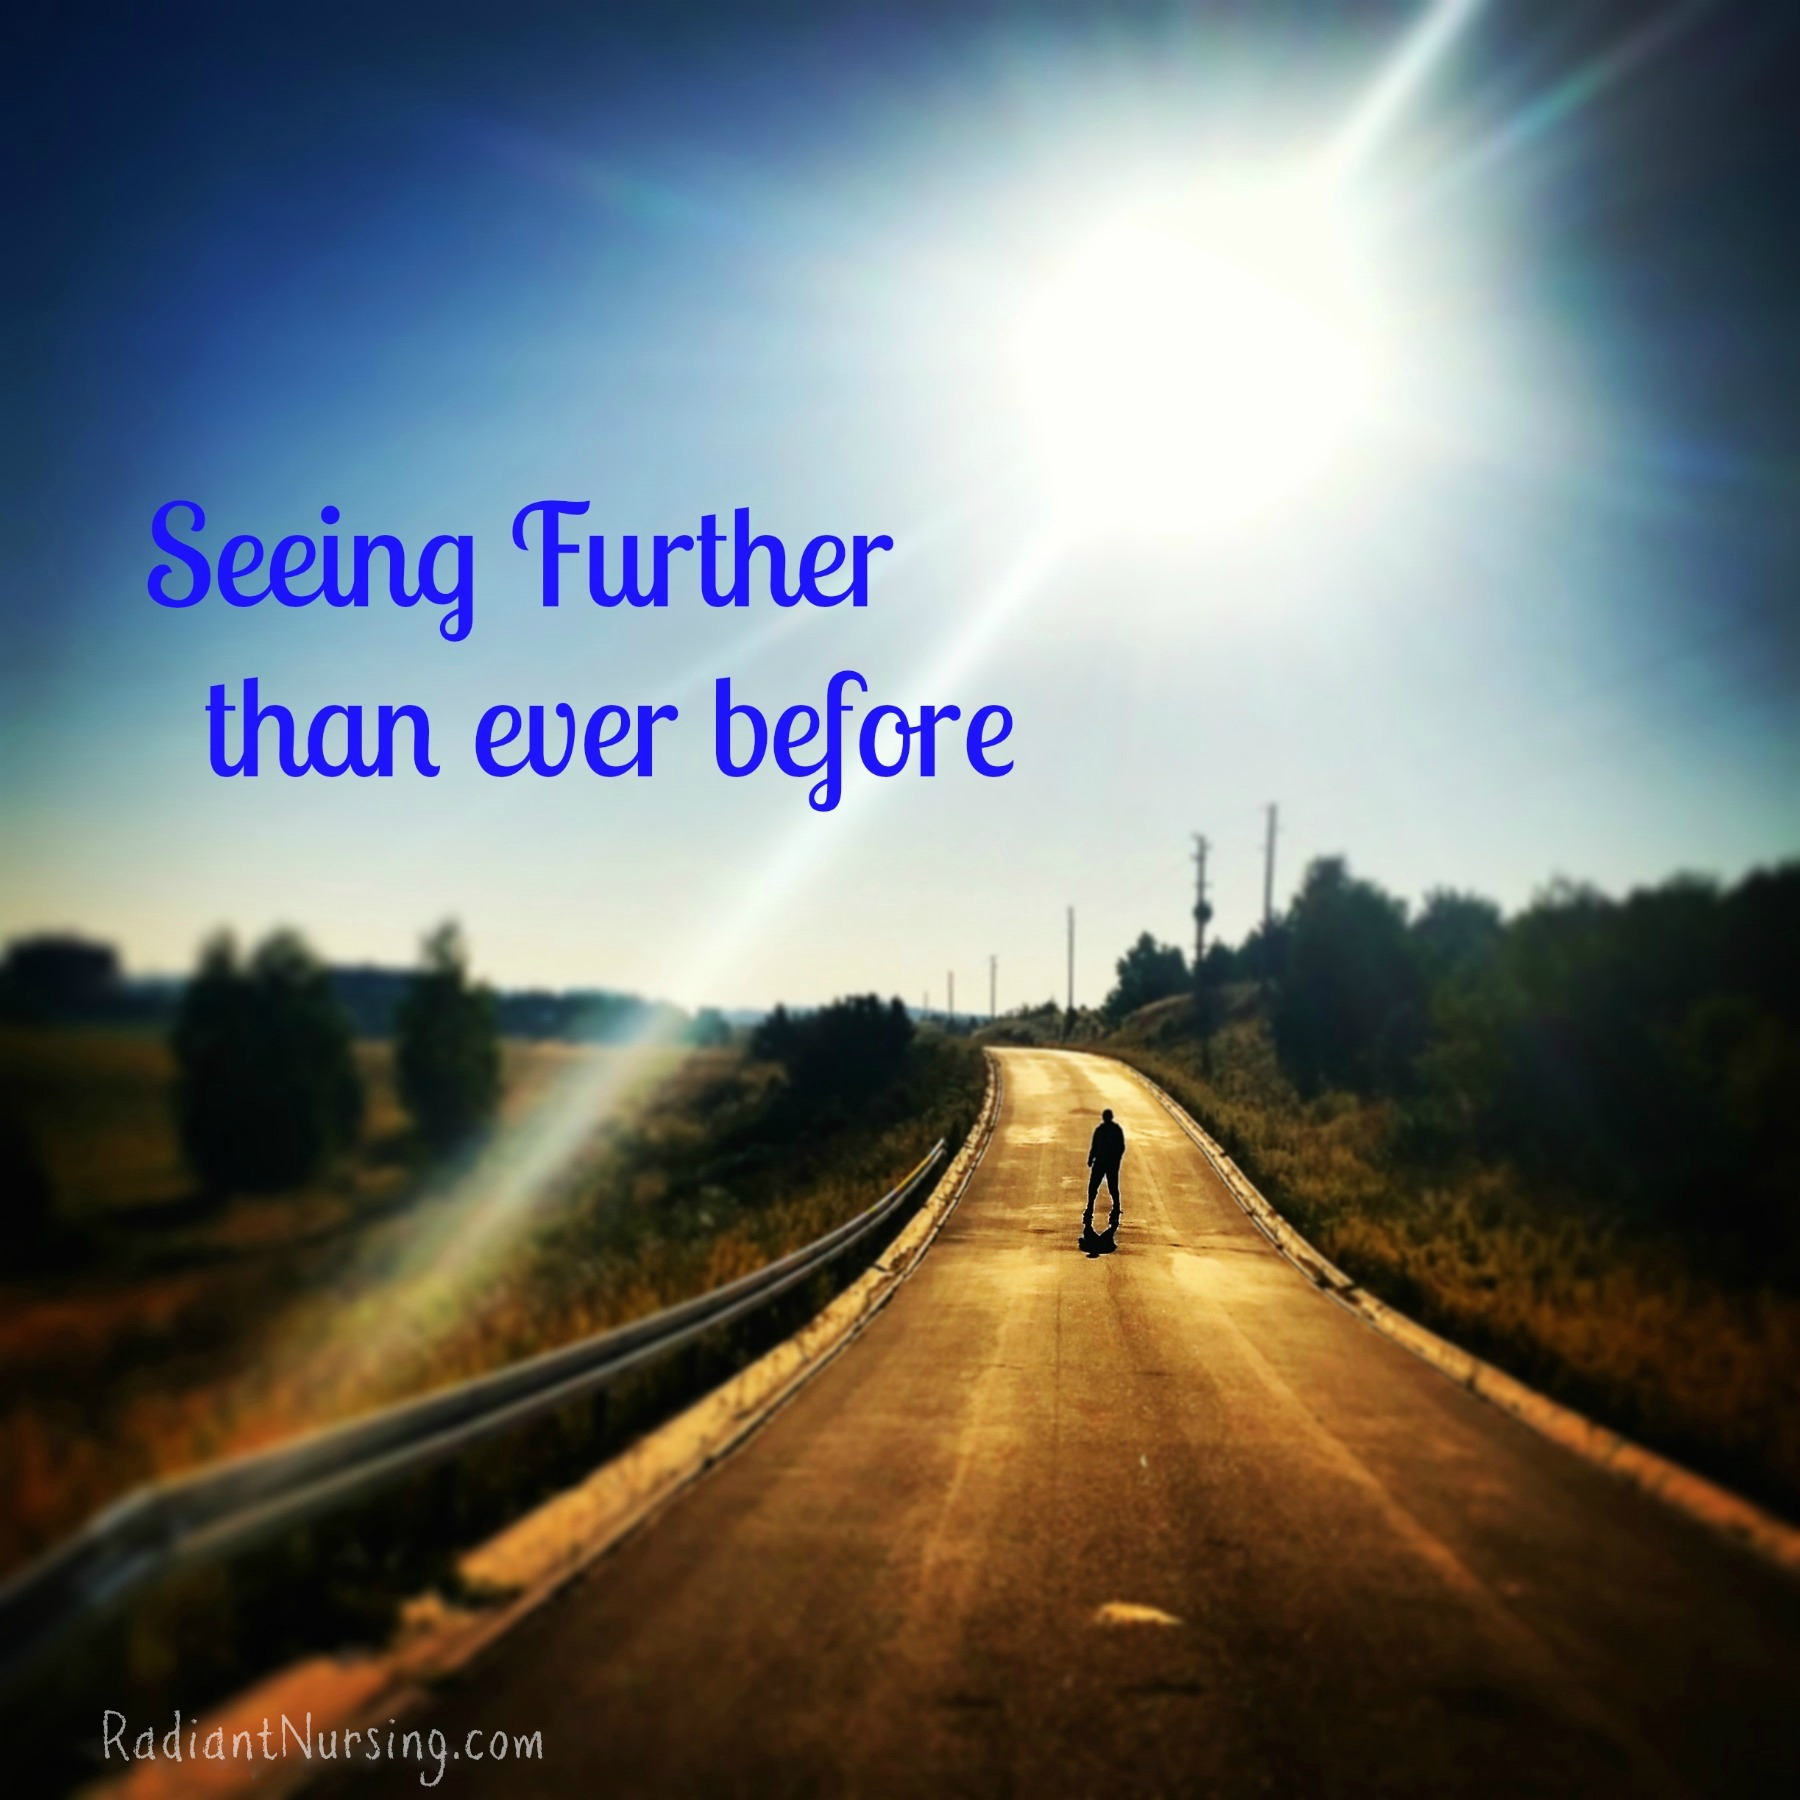 Seeing further than ever before on the long and winding road of life.